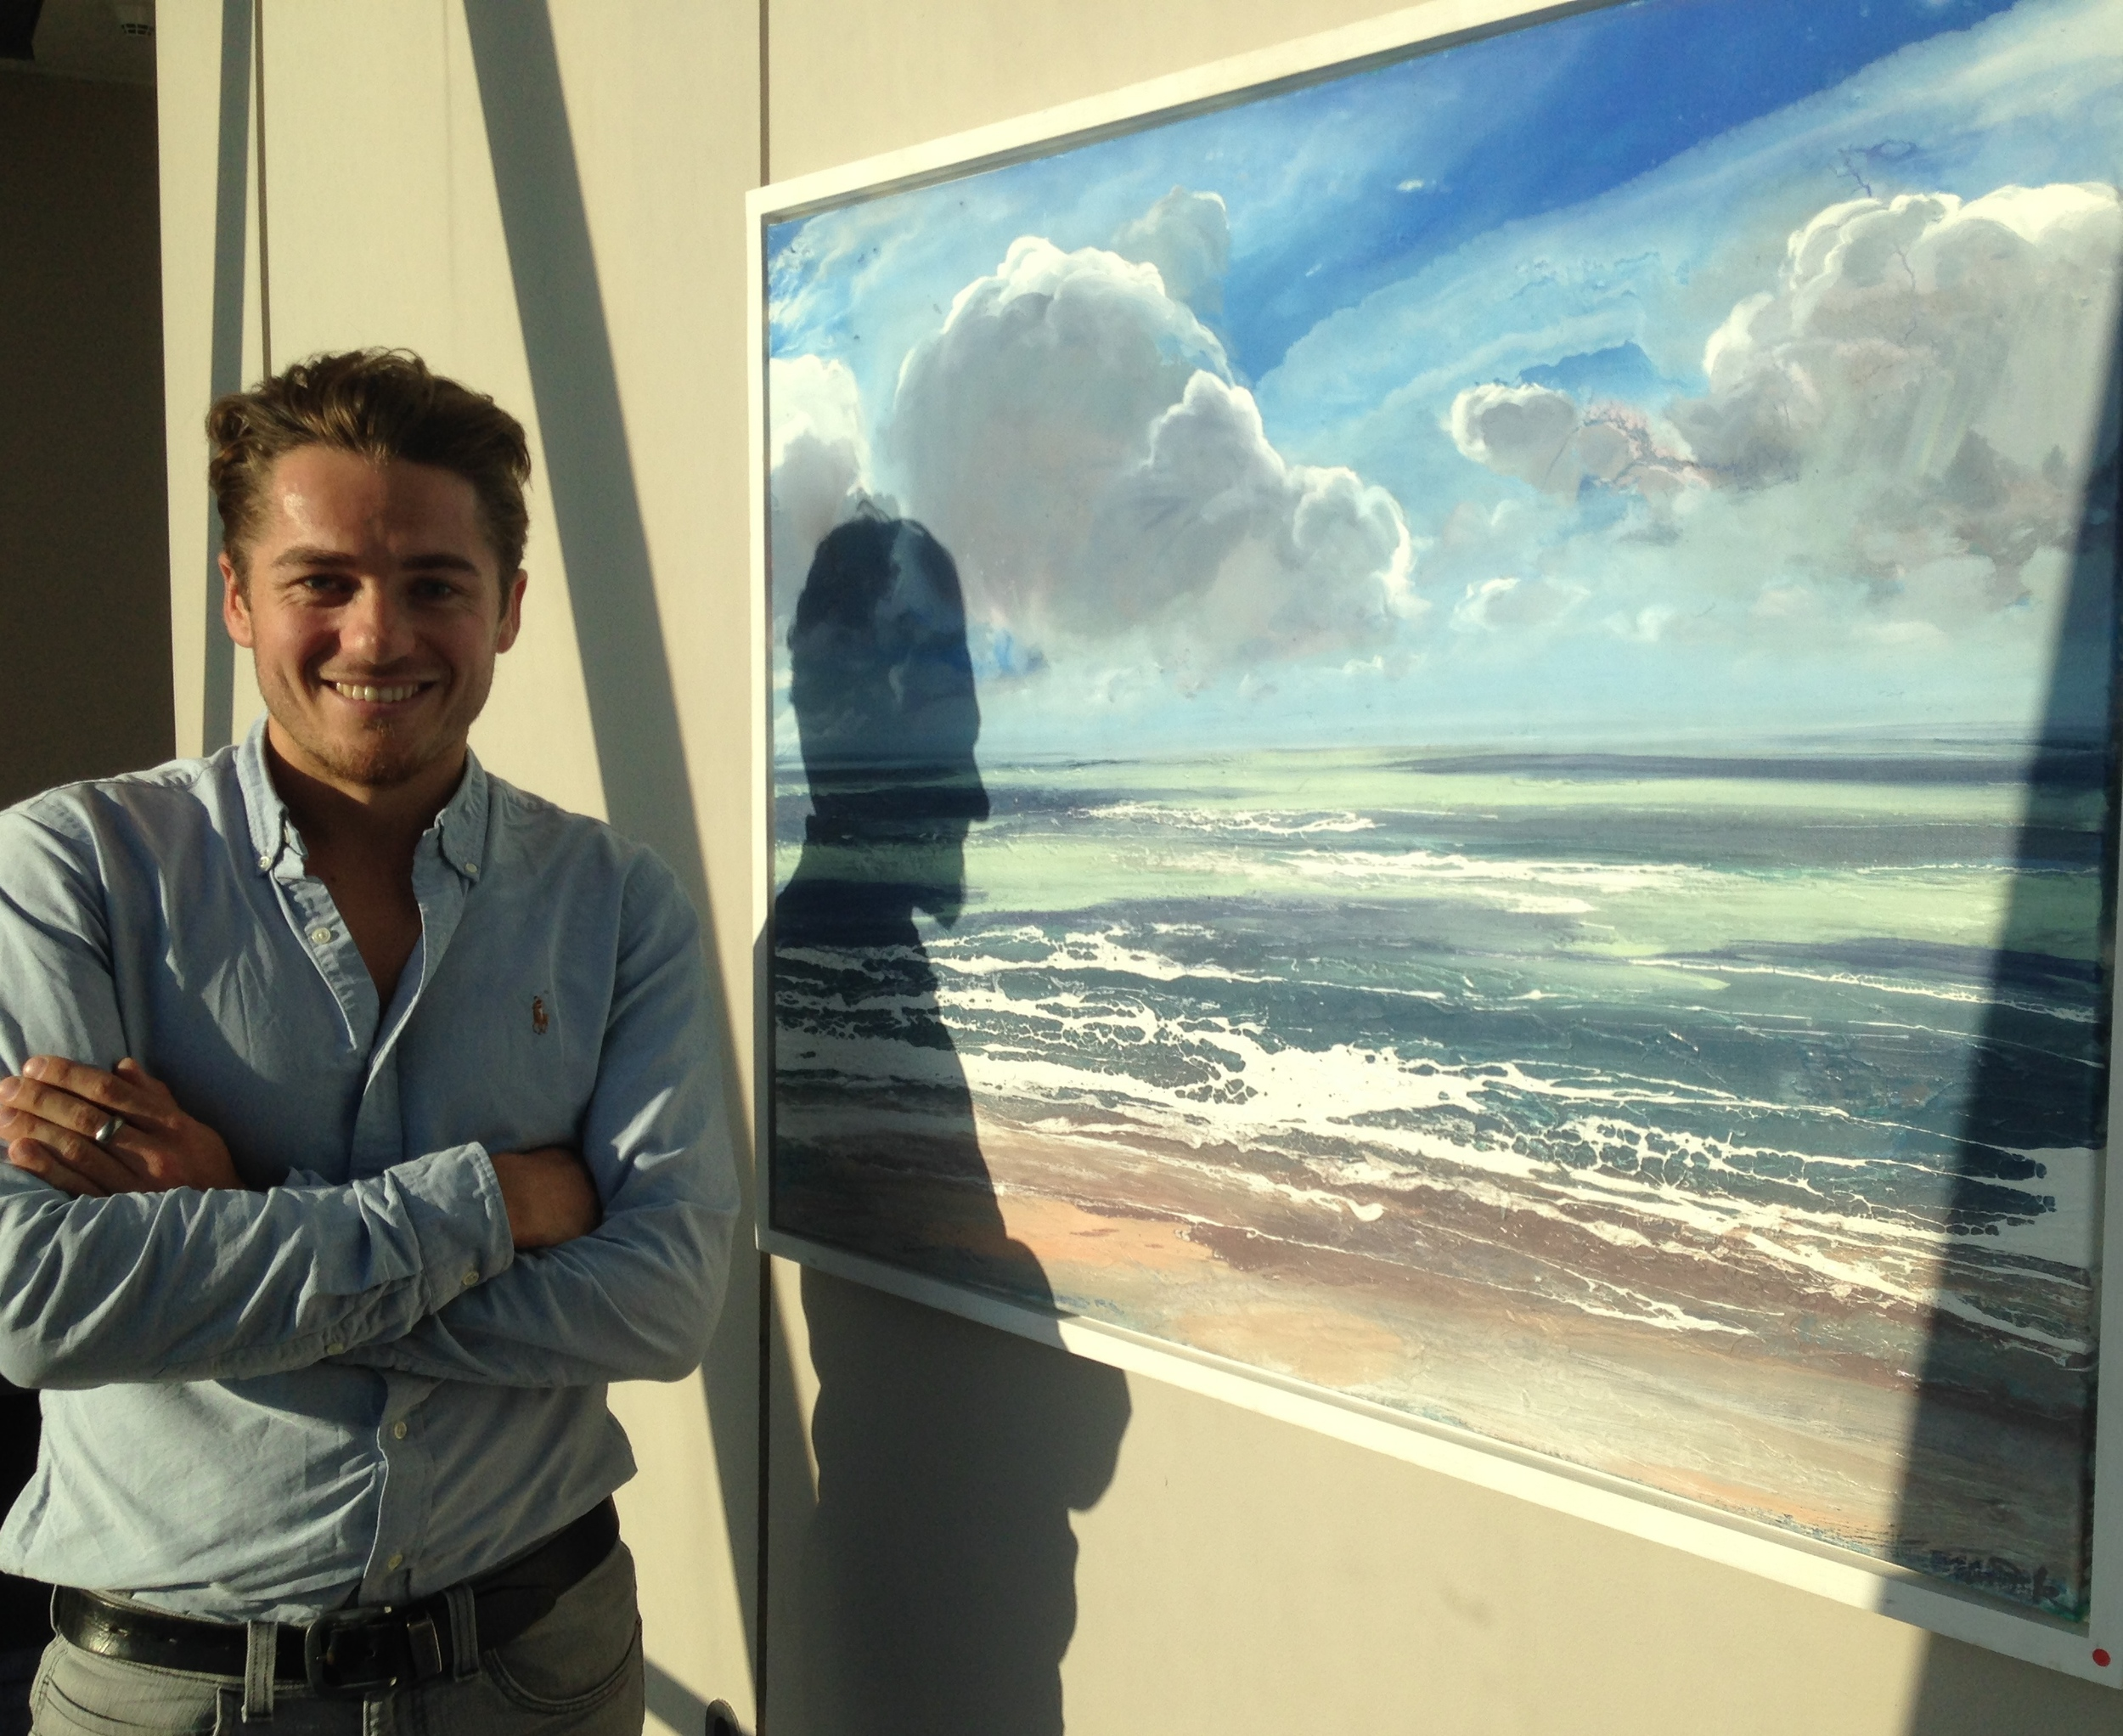 Michael Sole with one of his paintings on display in the 38th floor art gallery in The Gherkin